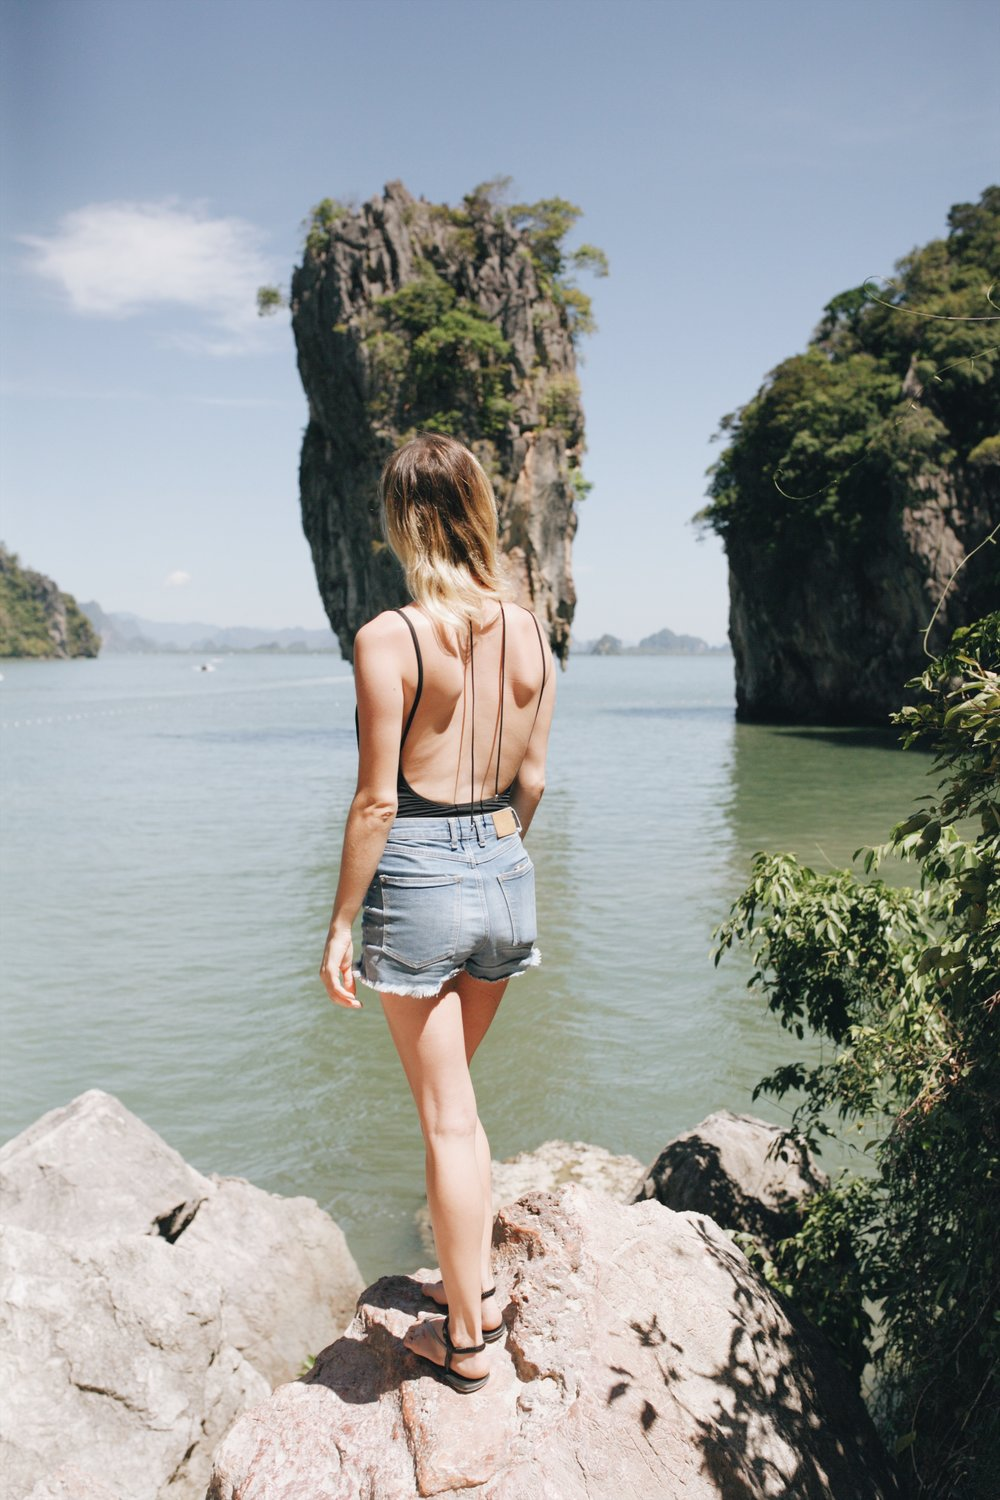 """also known as """"james bond island"""" due to its appearance in a film"""